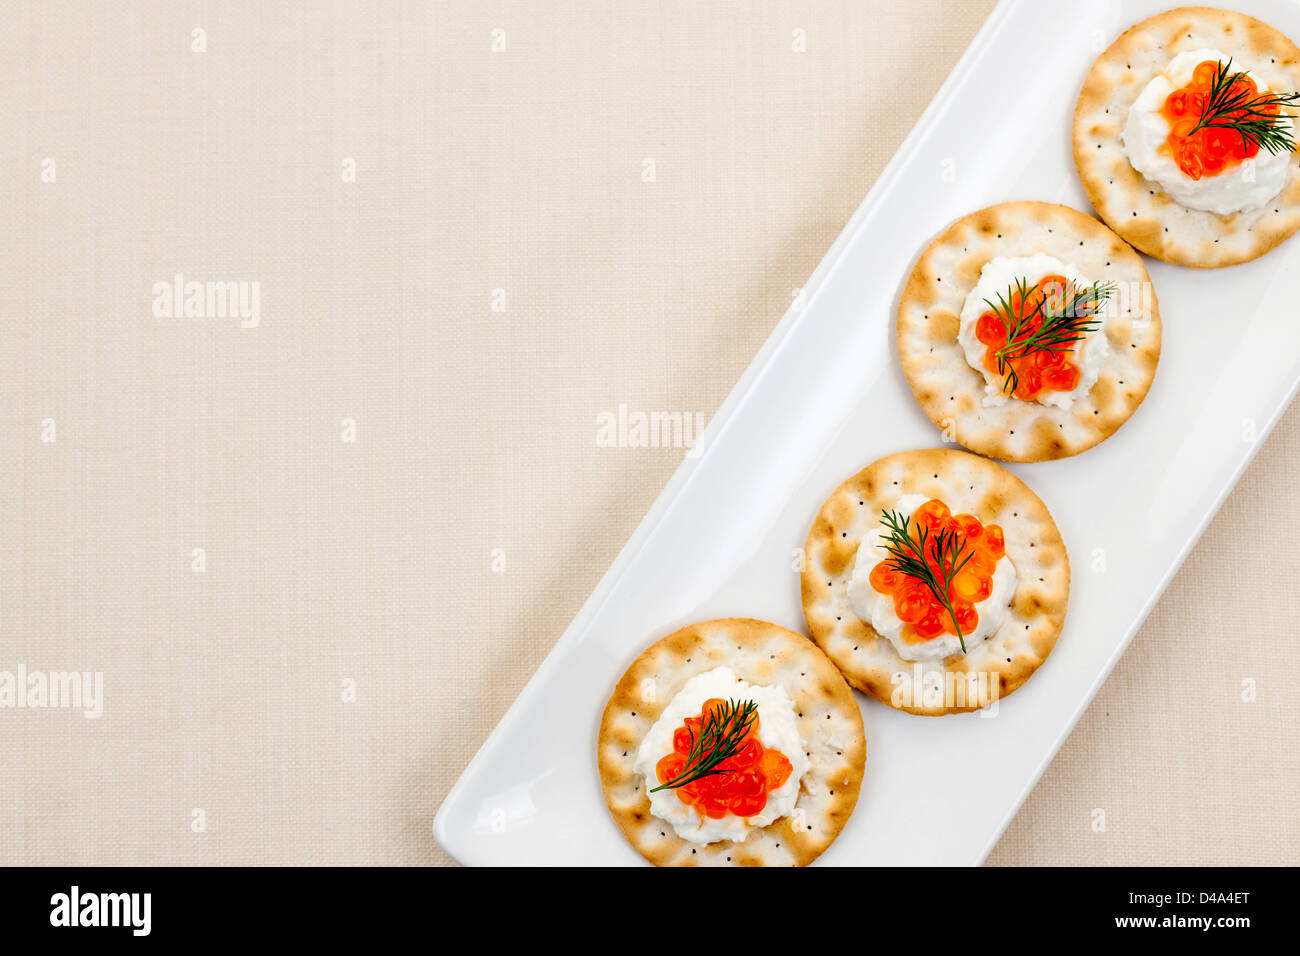 Caviar and goat cheese appetizer on white plate from above with copy space - Stock Image